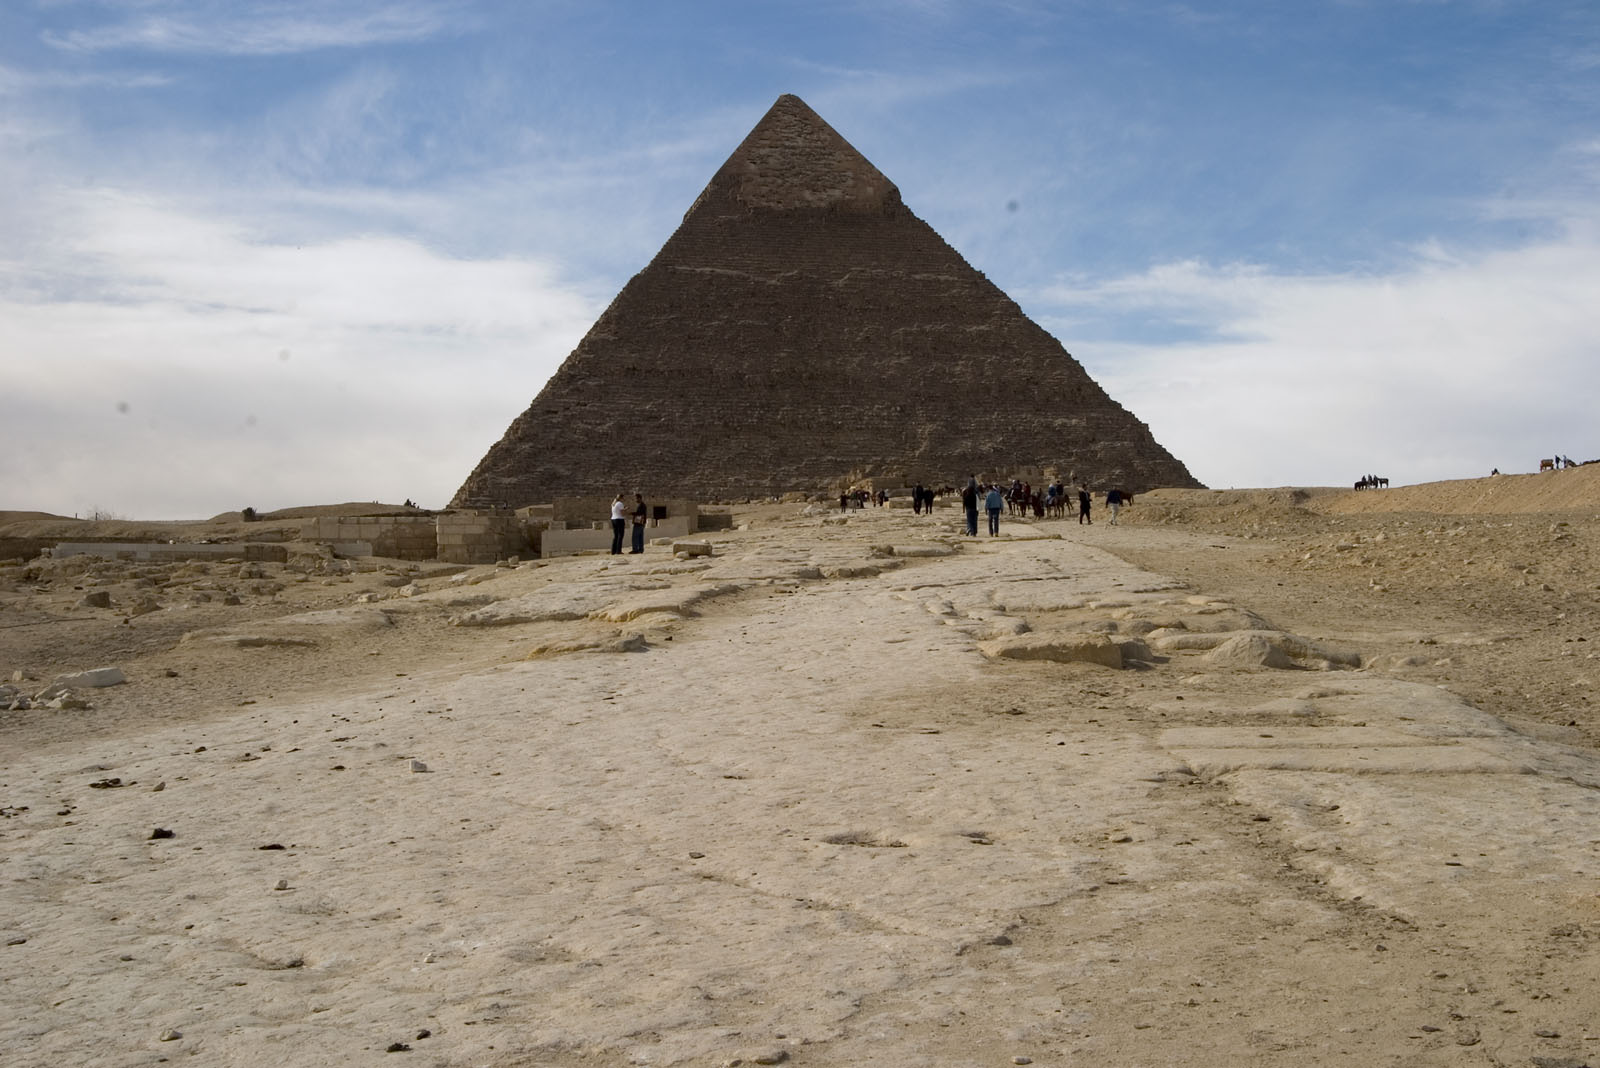 Khafre pyramid and or pyramid temple: Site: Giza; View: Khafre pyramid